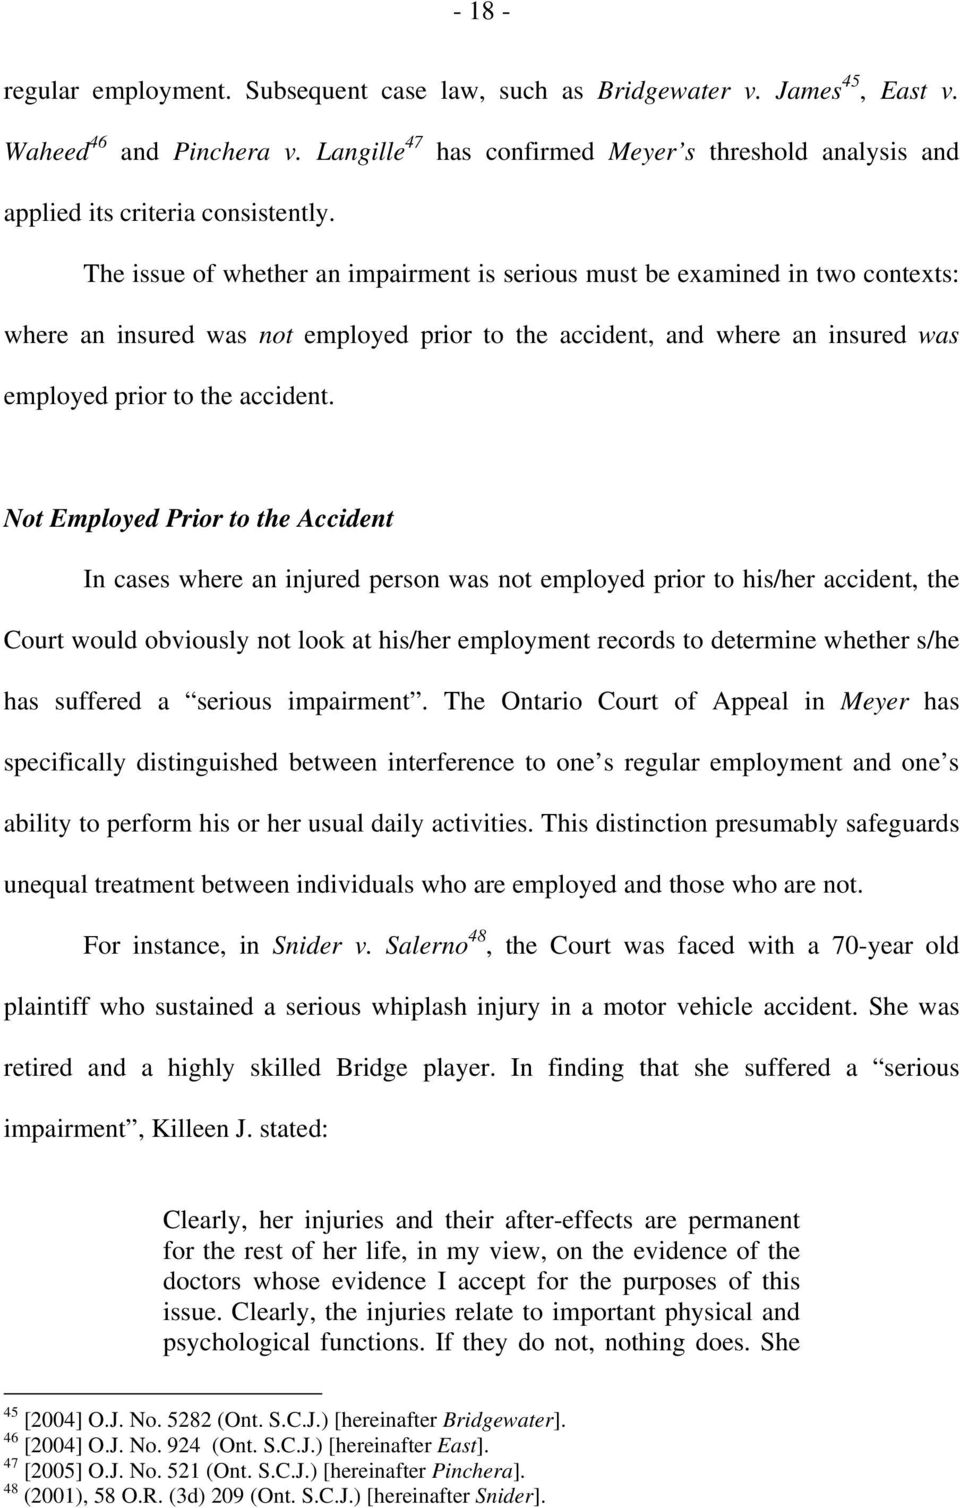 The issue of whether an impairment is serious must be examined in two contexts: where an insured was not employed prior to the accident, and where an insured was employed prior to the accident.